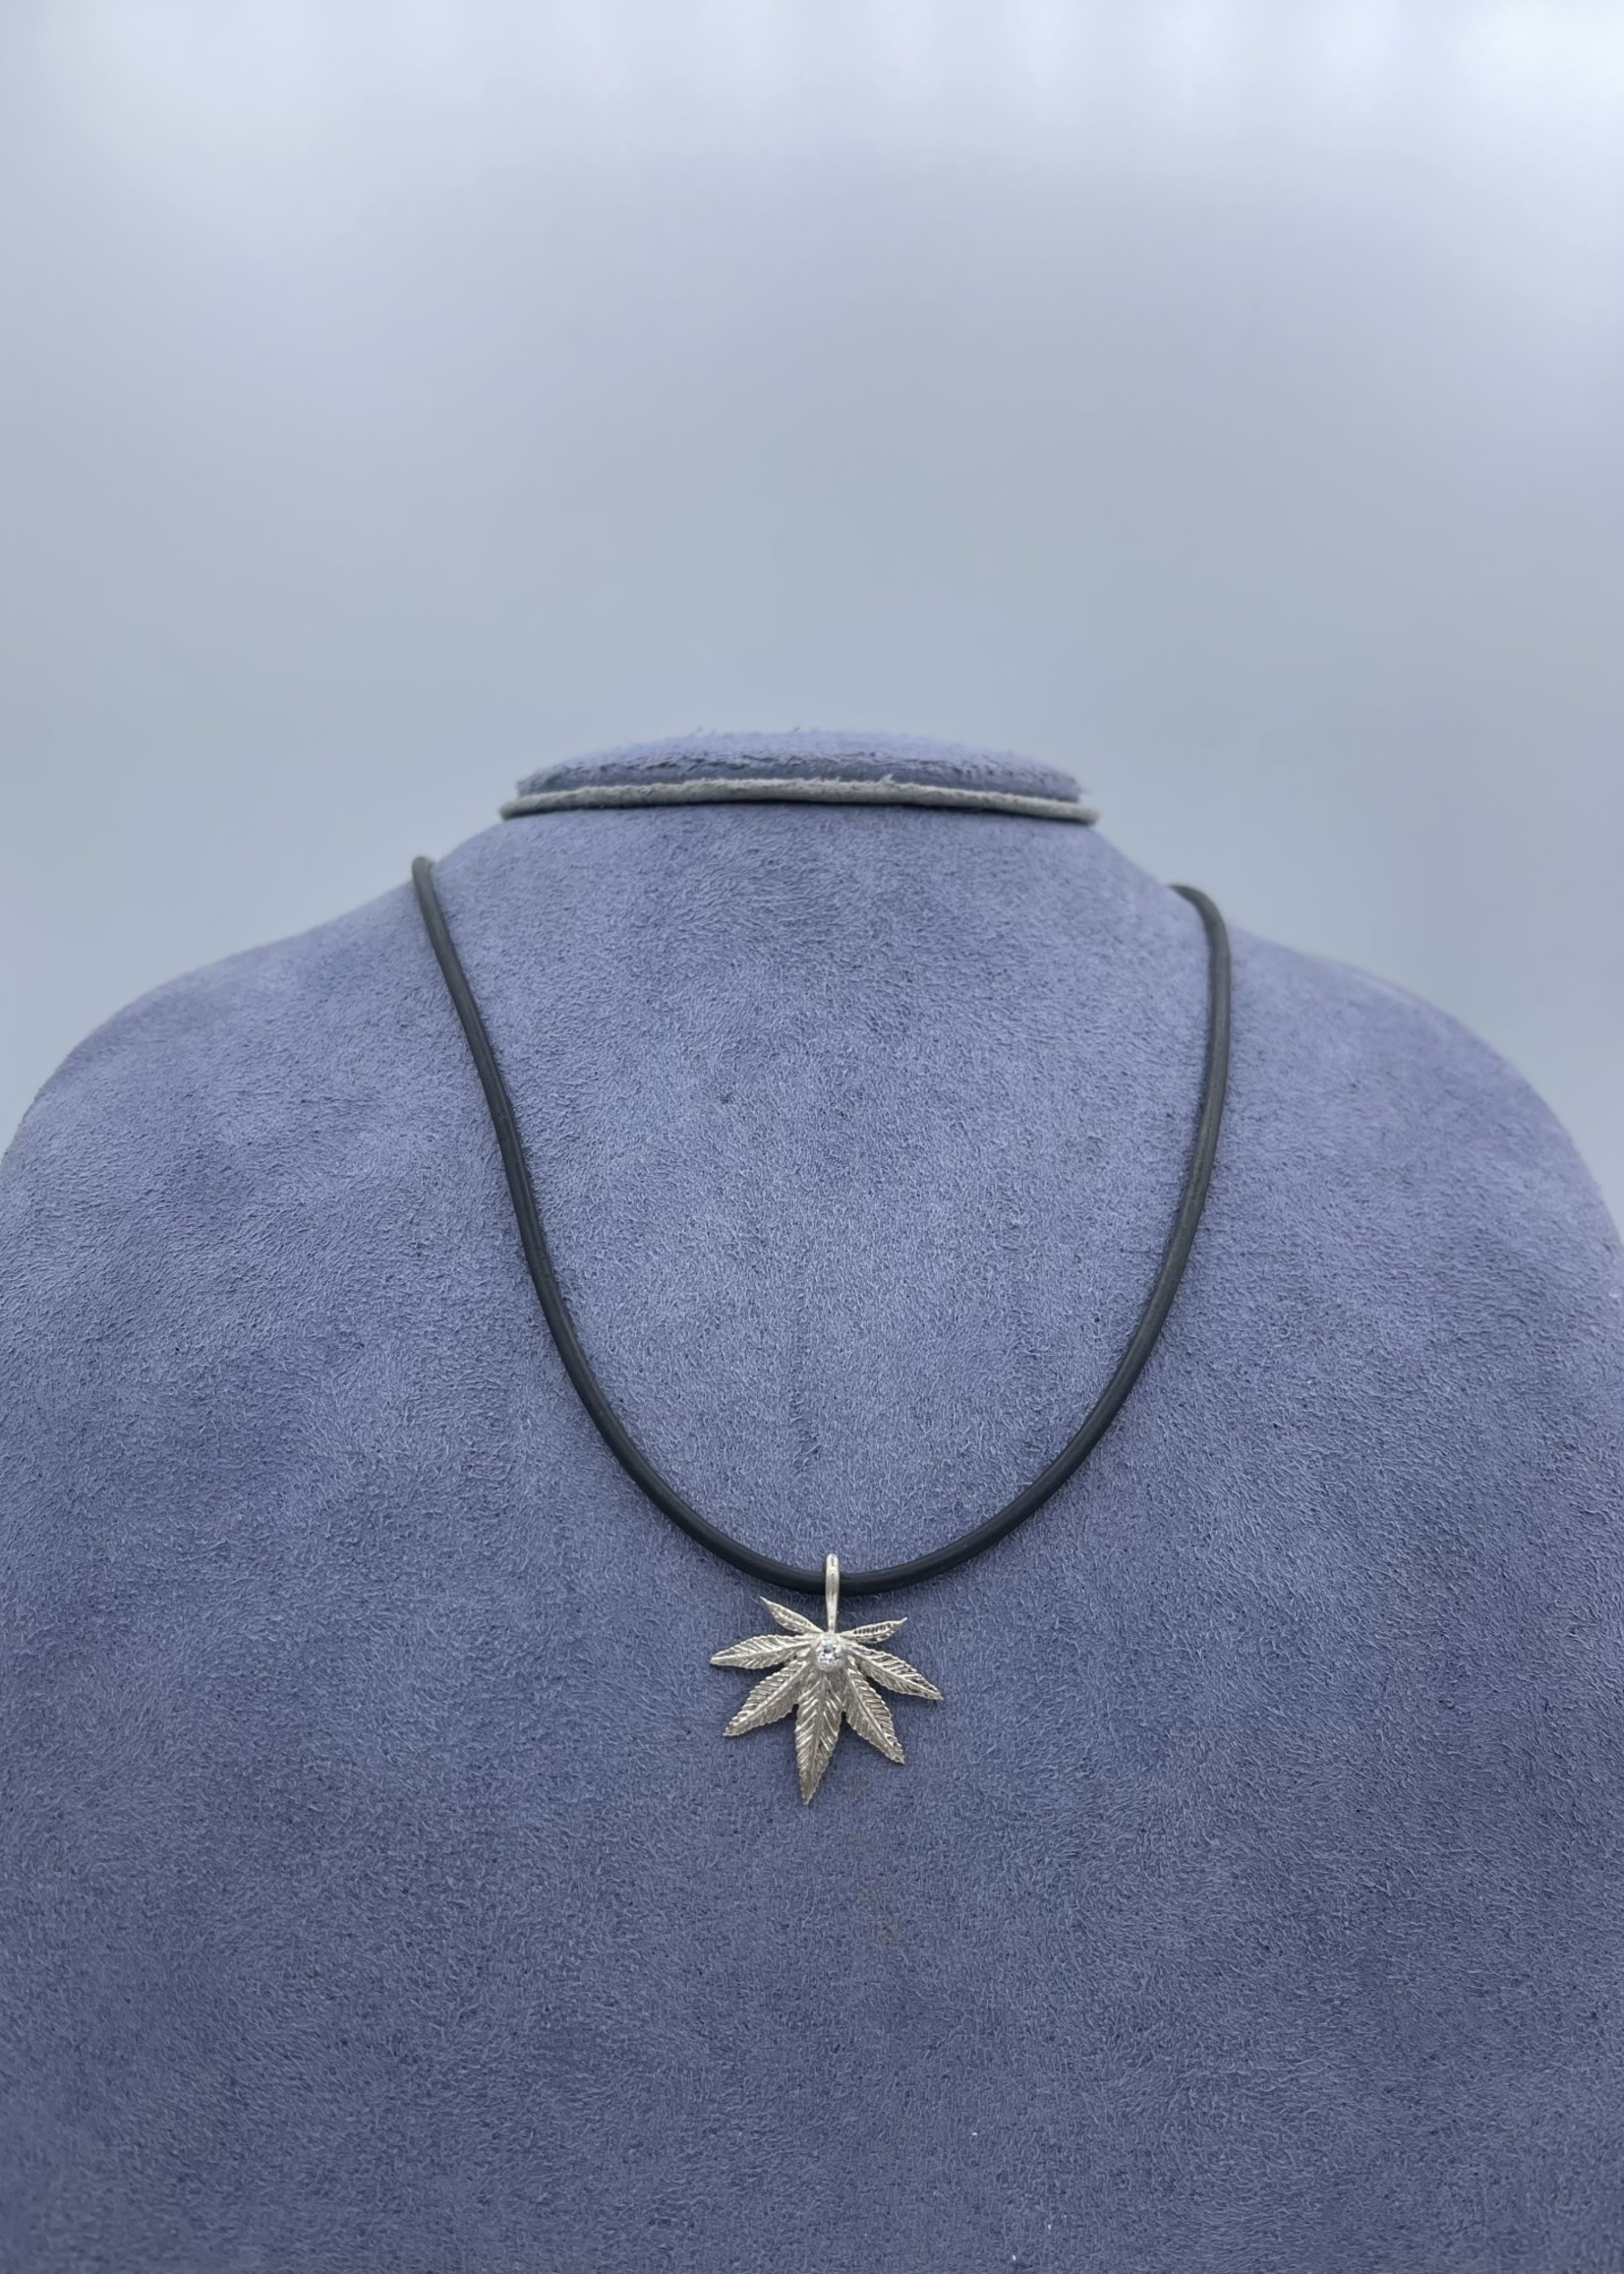 CJ Designs Weed Sterling Silver Necklace with Diamond